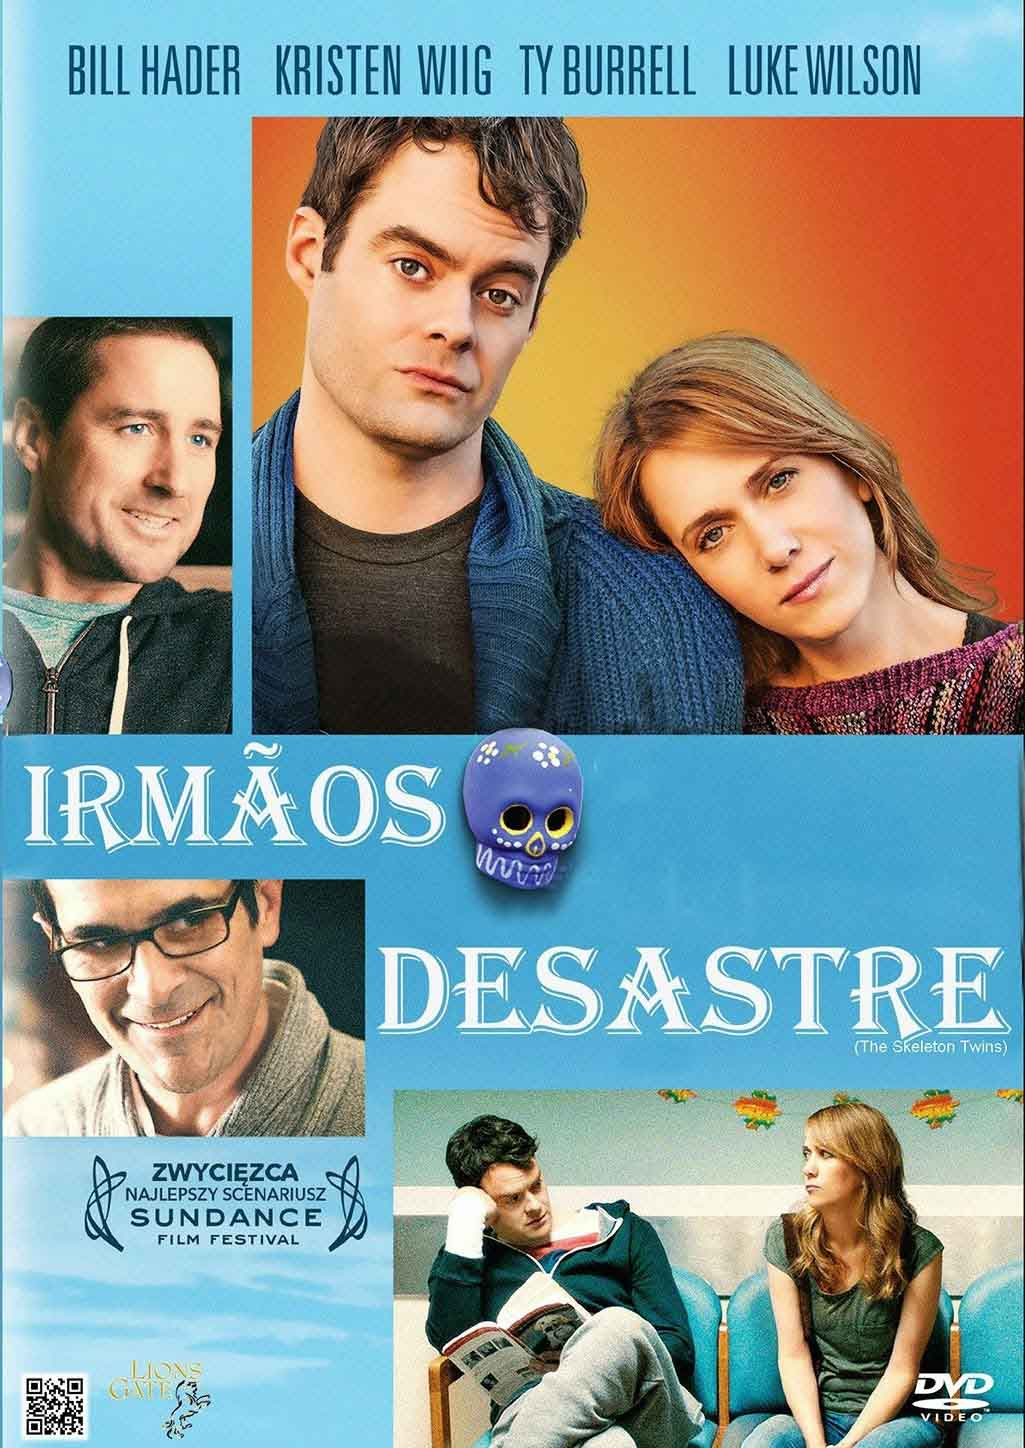 Irmãos Desastre Torrent - Blu-ray Rip 1080p Dual Áudio (2015)